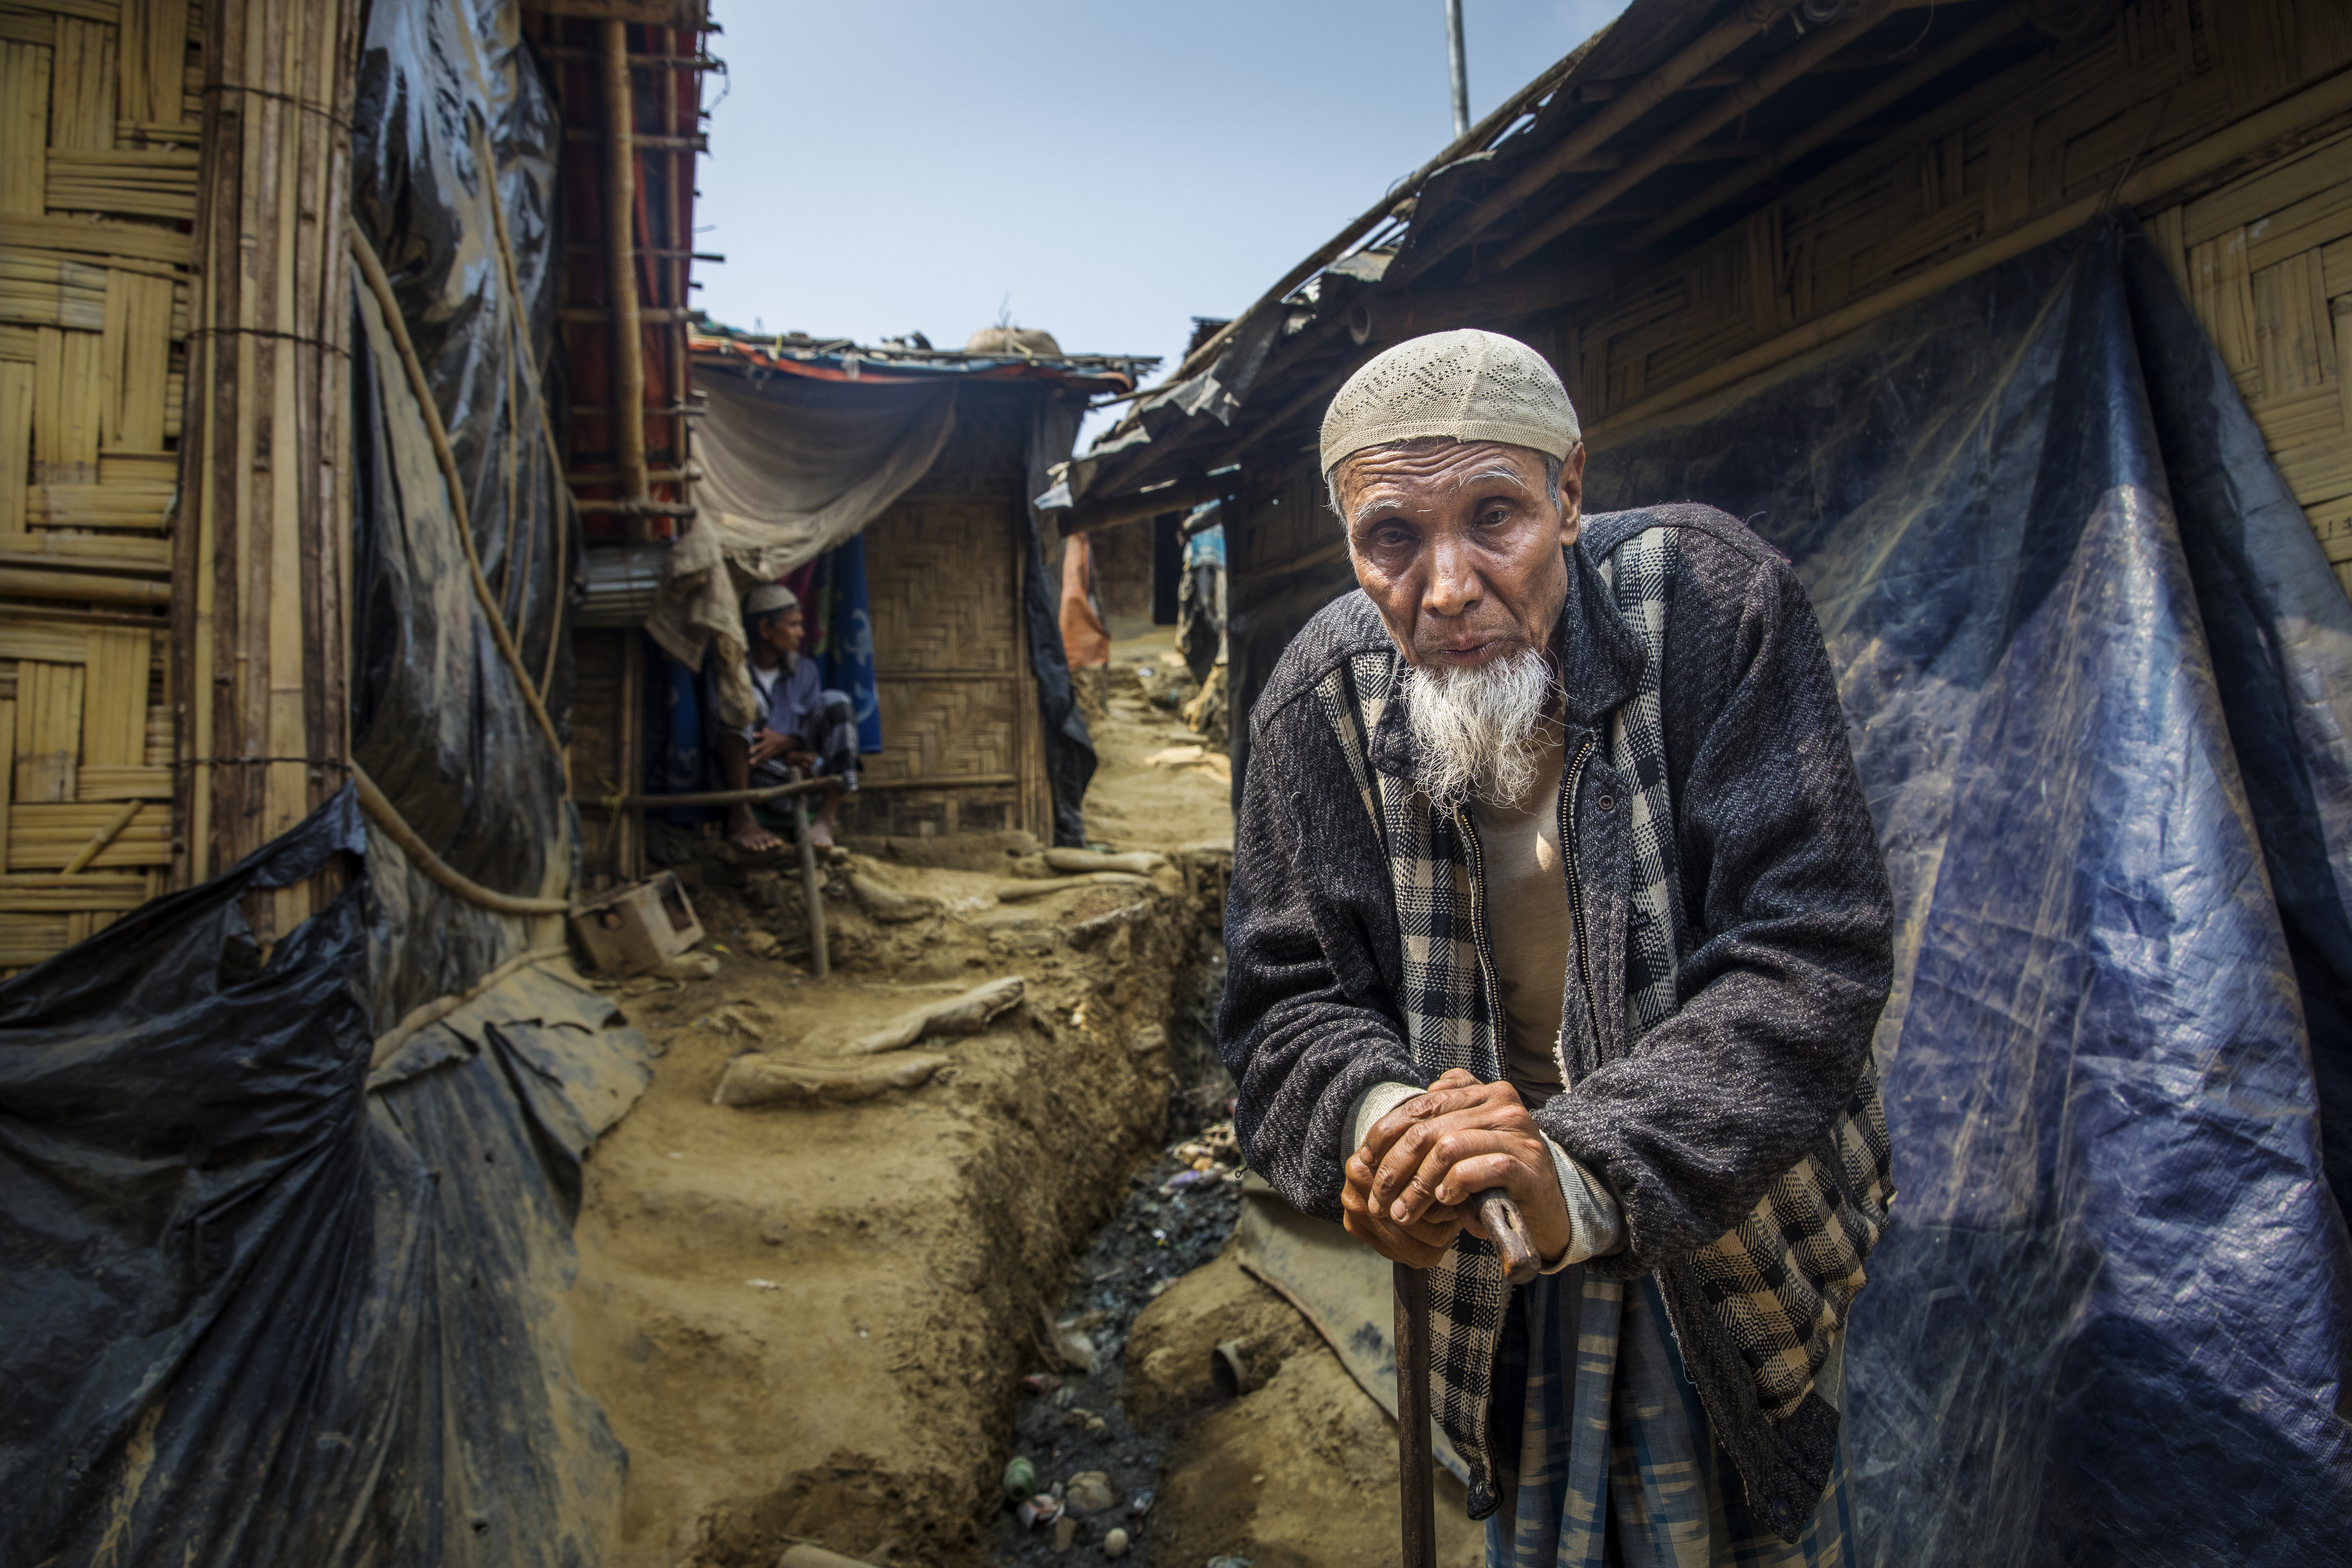 """""""My heart cries"""": For one Rohingya refugee, a dream of home that may never be fulfilled"""